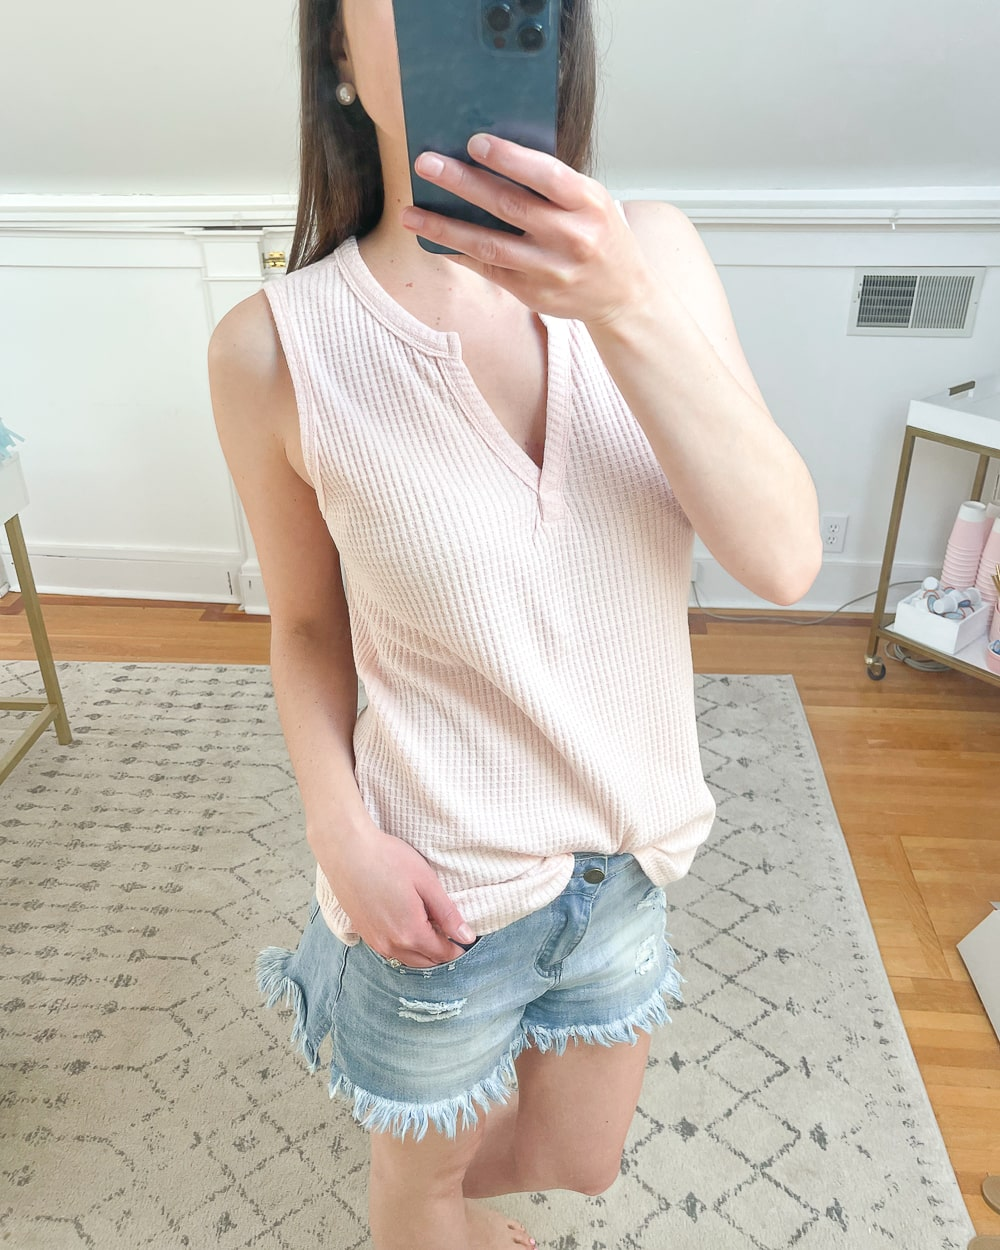 As part of an affordable Amazon try on haul, affordable fashion blogger Stephanie Ziajka shares a detail shot of her casual pink Amazon waffle knit shirt on Diary of a Debutante